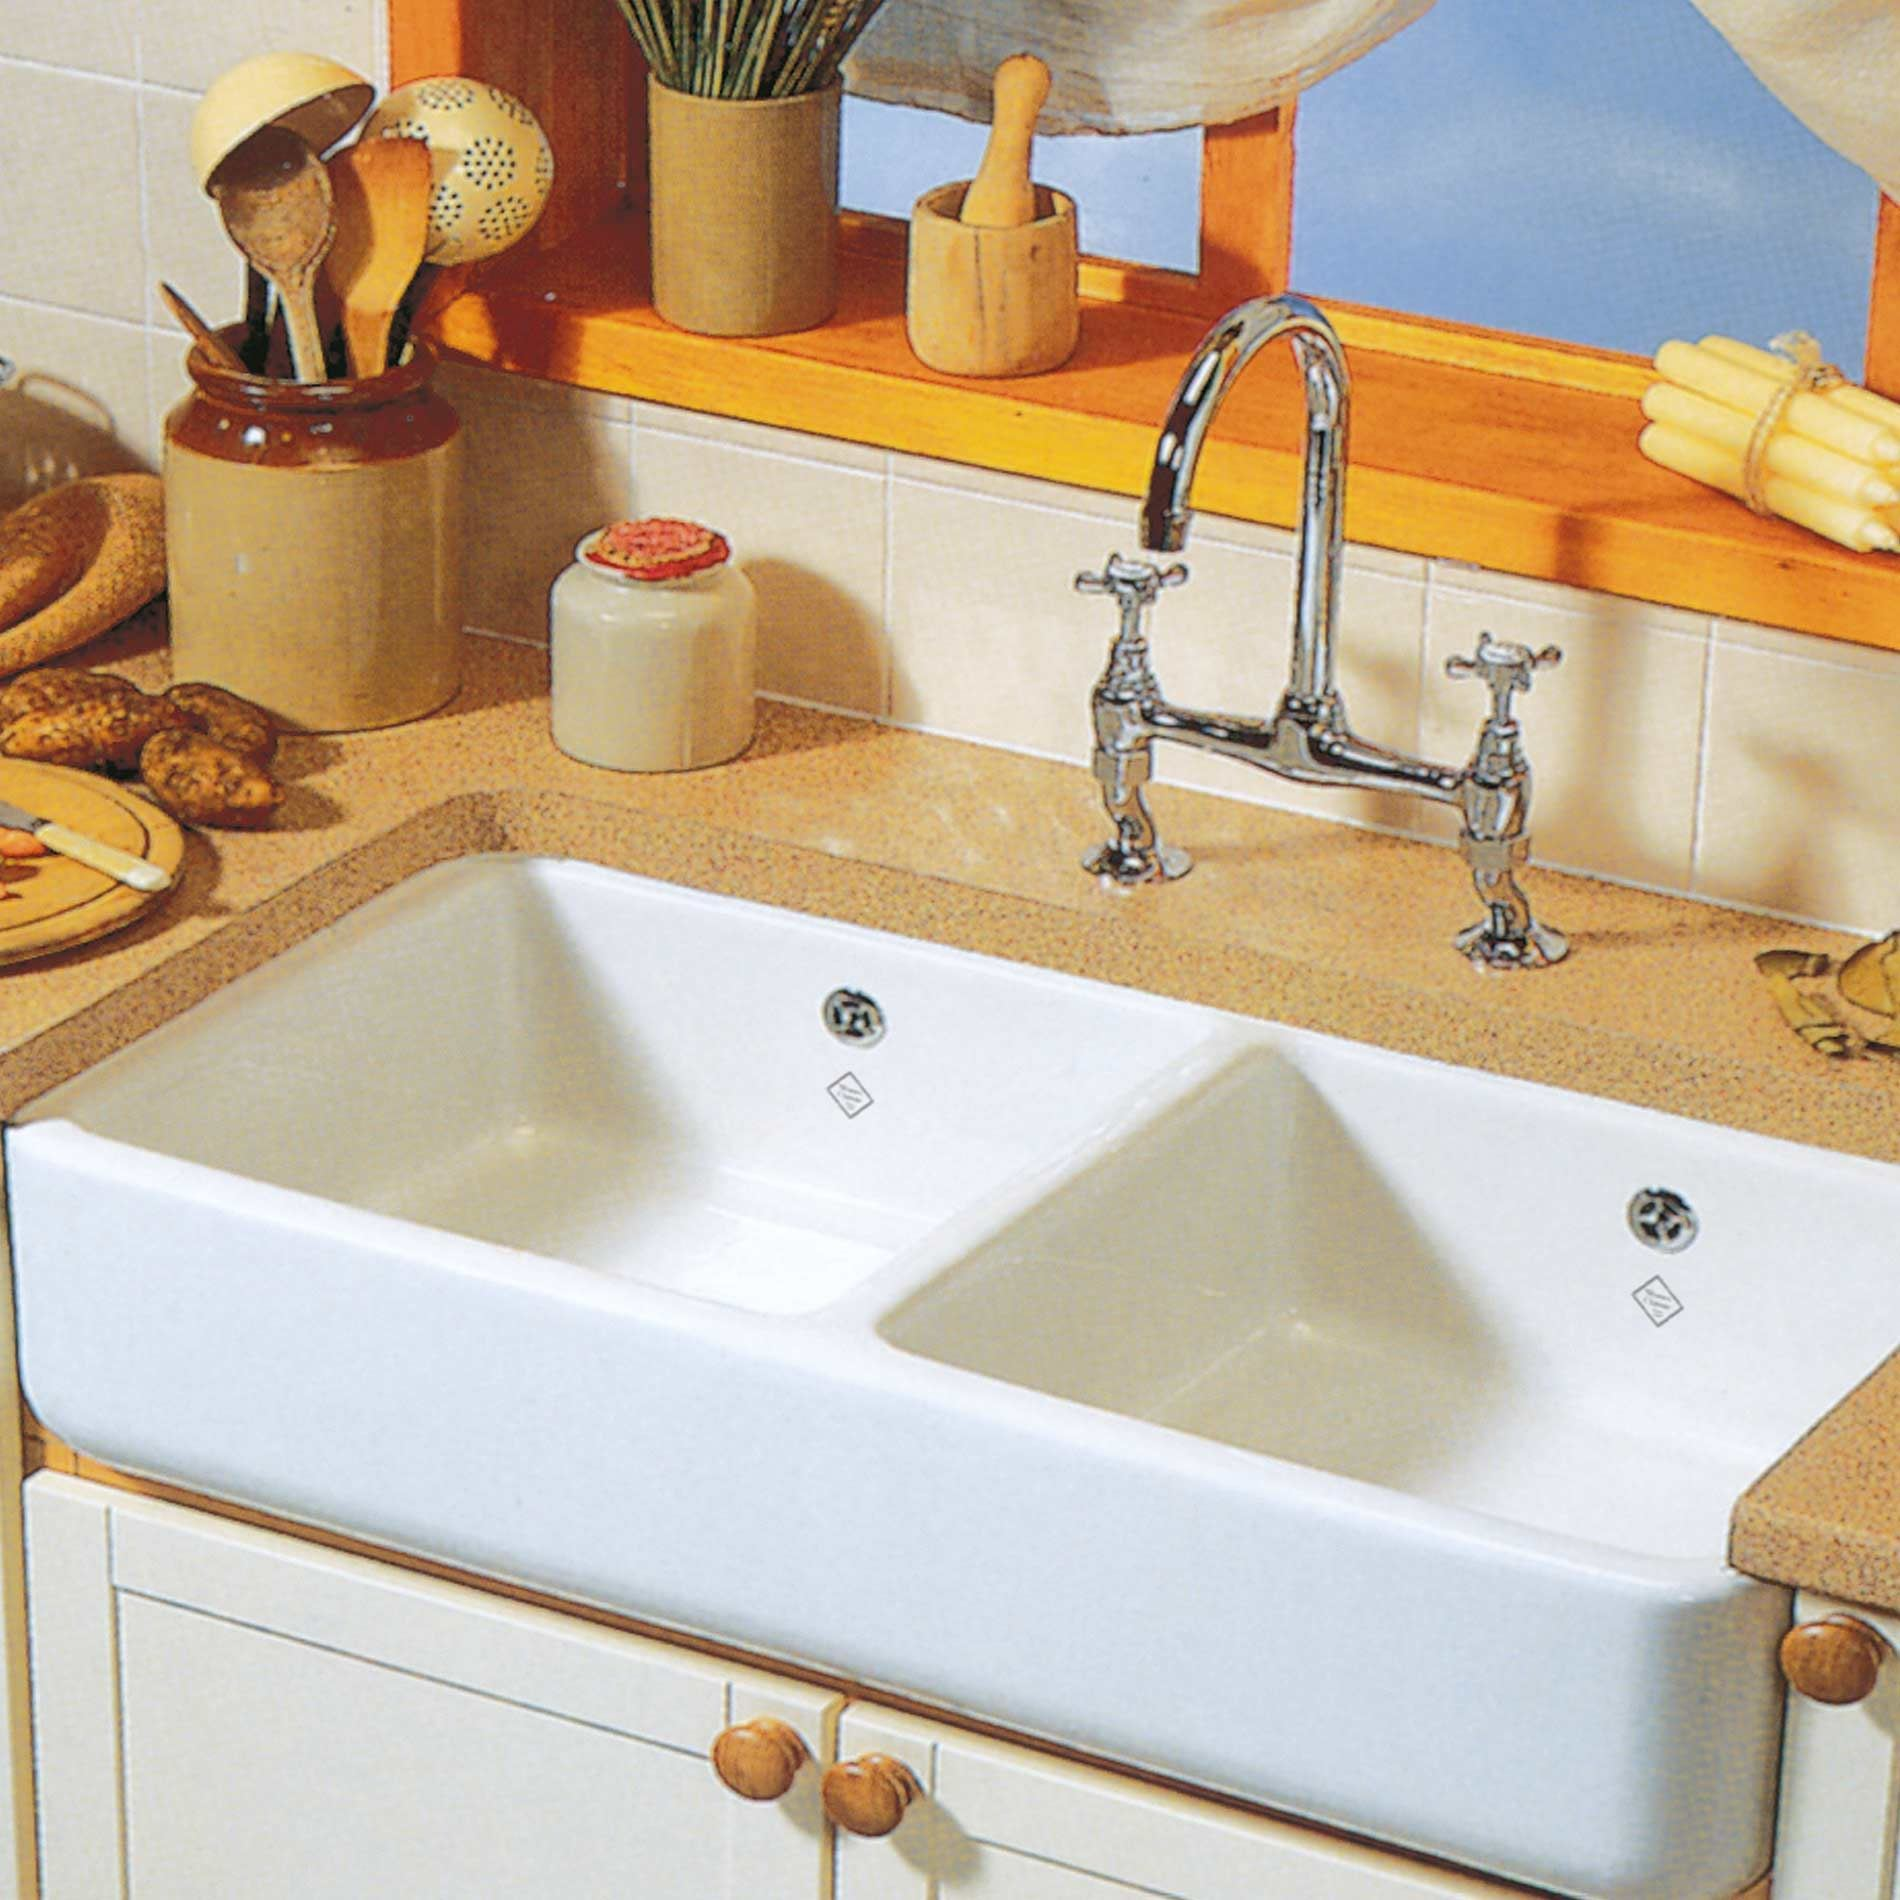 Shaws: Classic 1000 Double Ceramic Sink - Kitchen Sinks & Taps